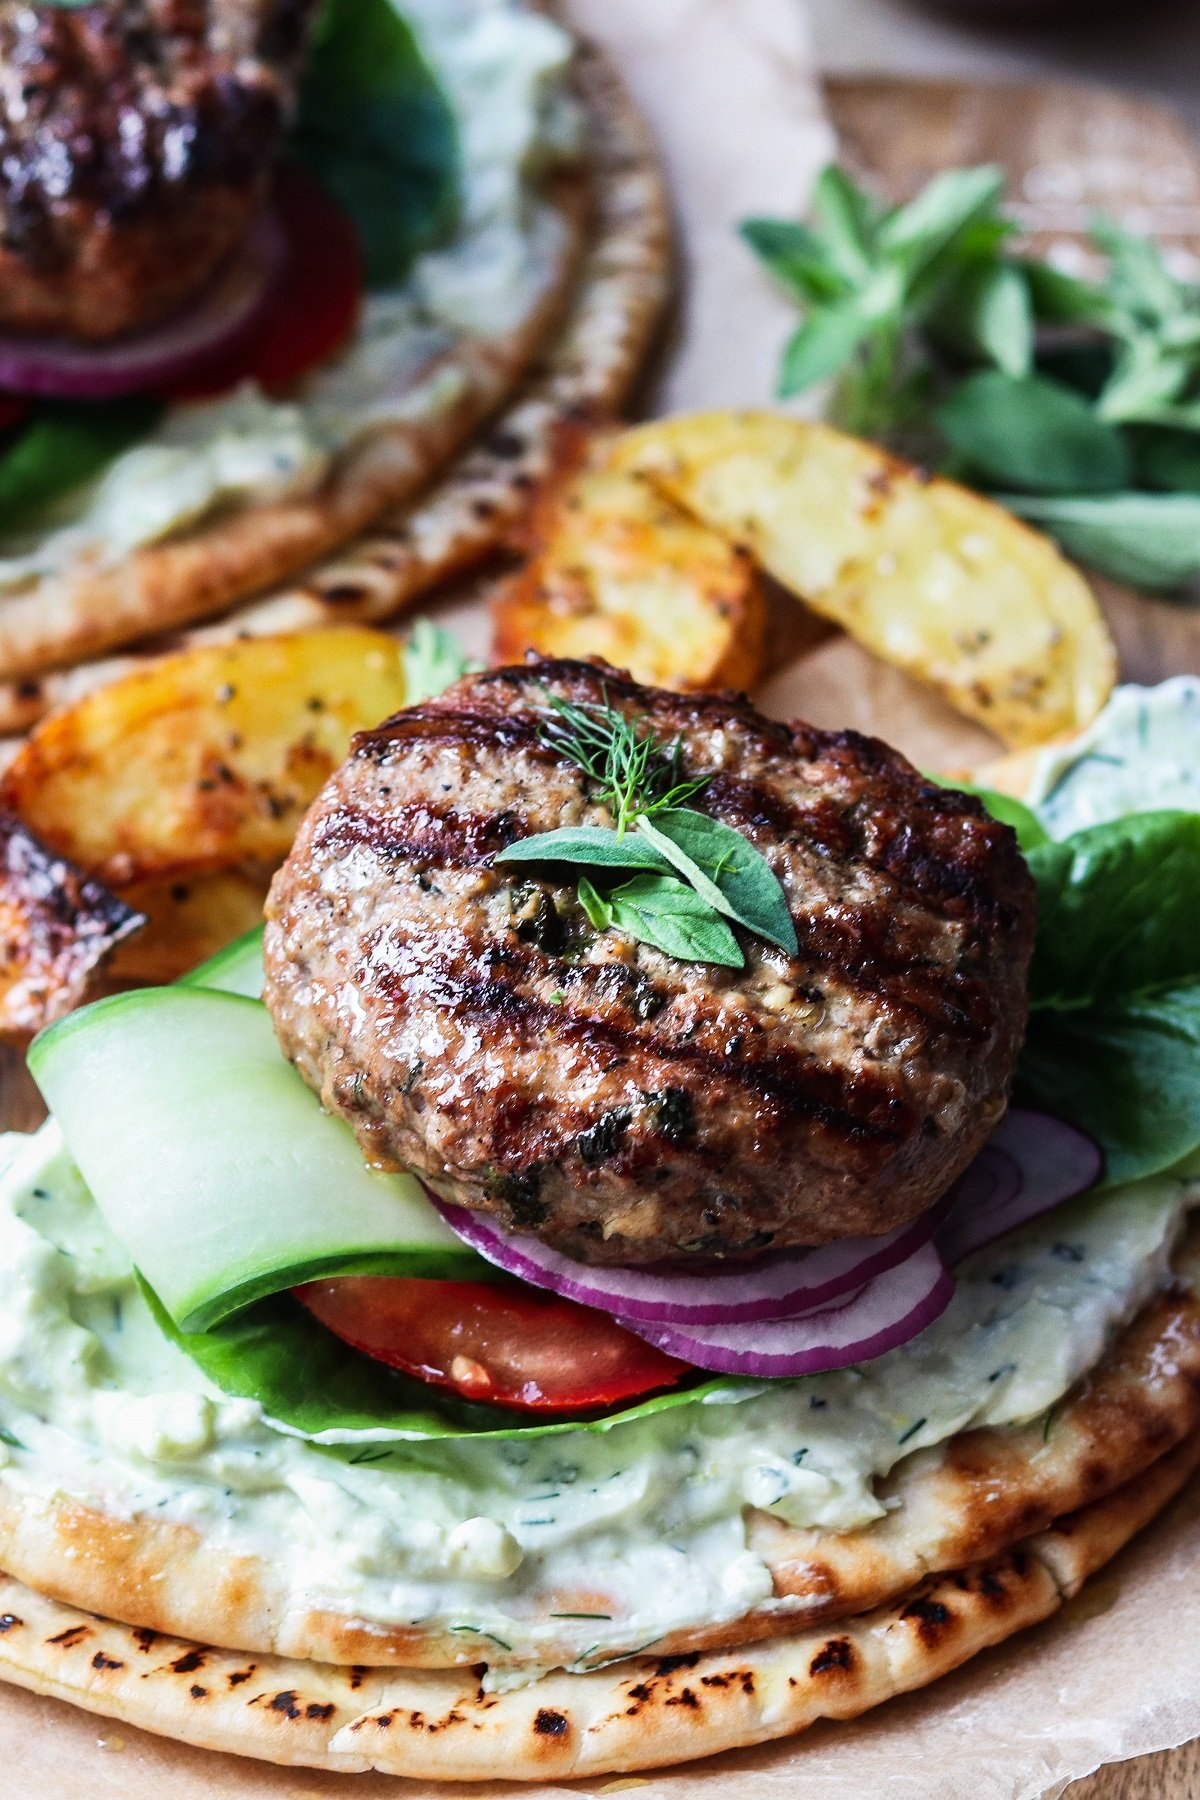 Grilled Greek lamb burgers served on pitas with tzatziki, lettuce, red onion and tomato.